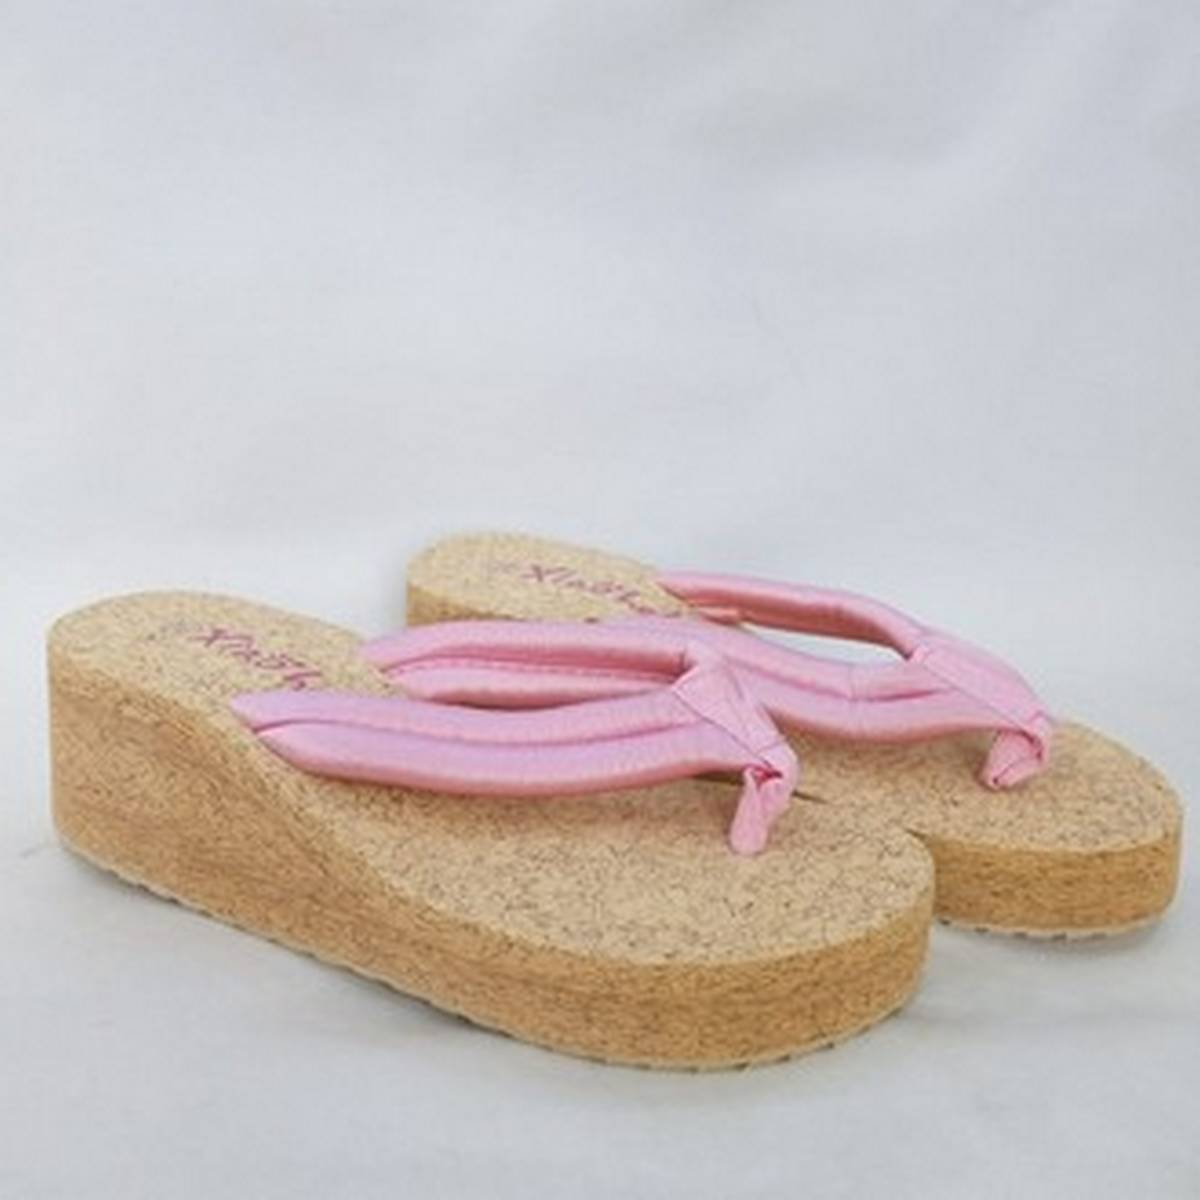 Wedge High Heel Slippers For Women Fashion ZS # 02